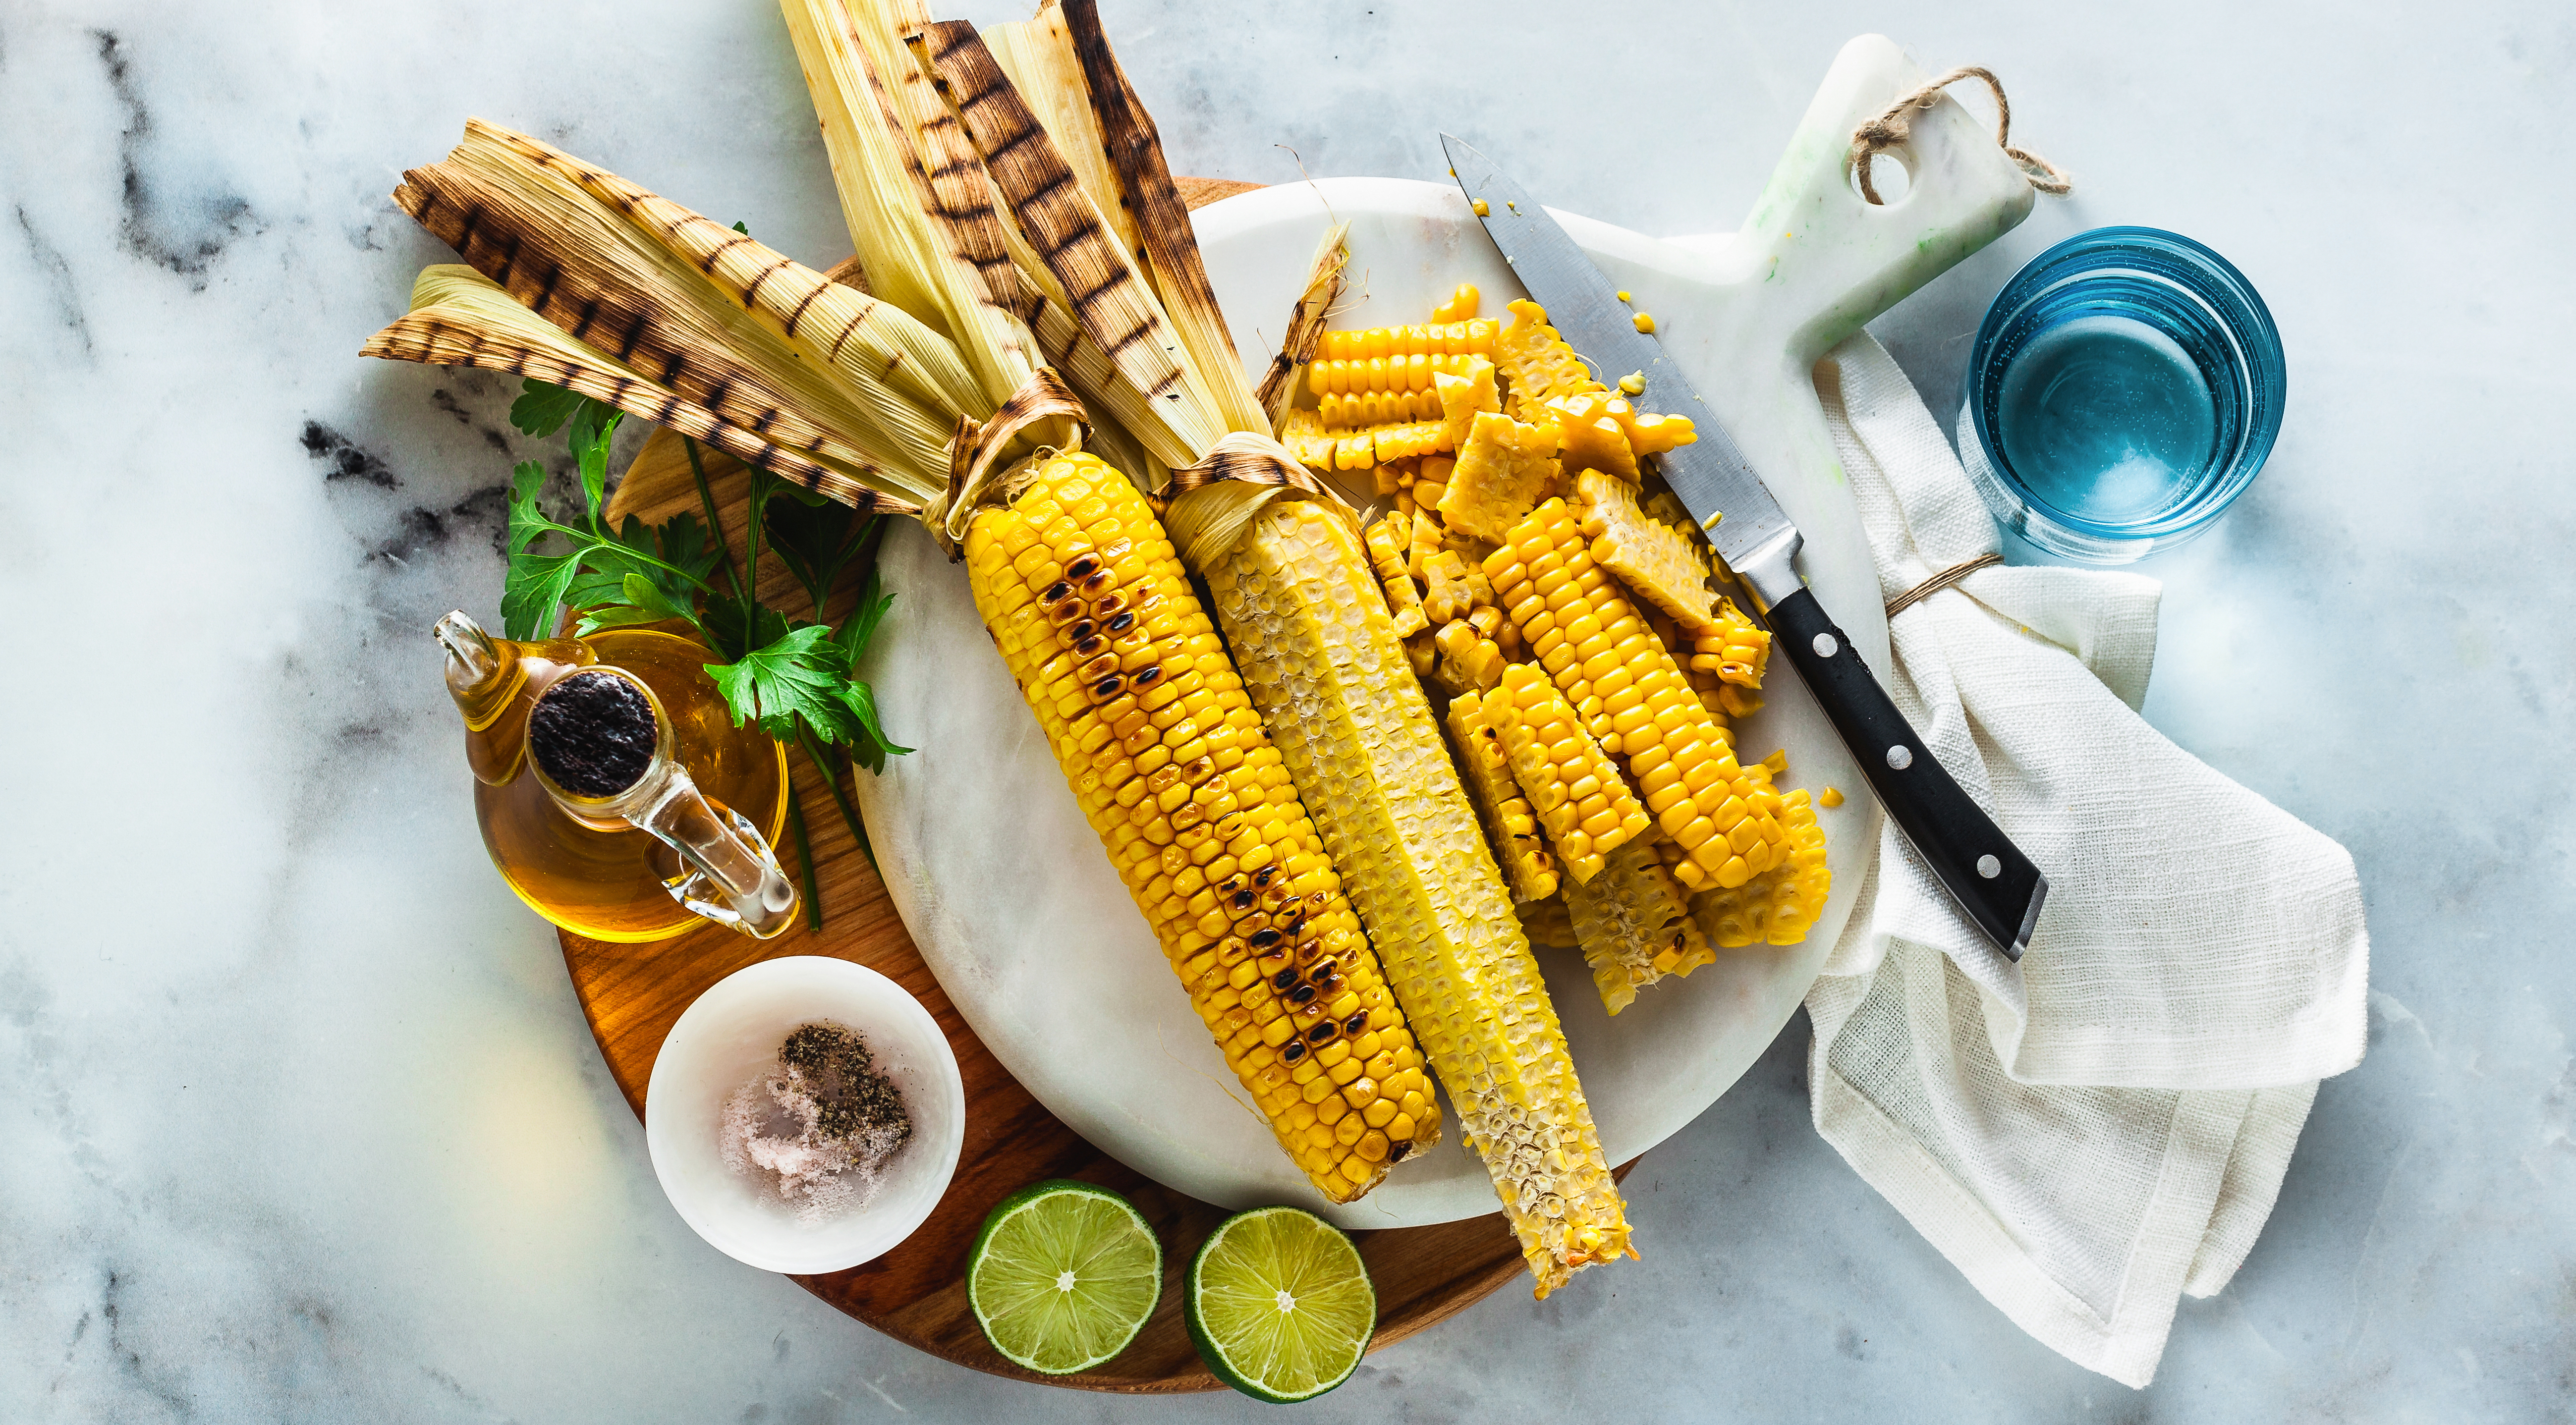 A plate of grilled corn on the cob surrounded by cut off wedges of kernels, limes, oil, and a blue glass on a white marble table top.